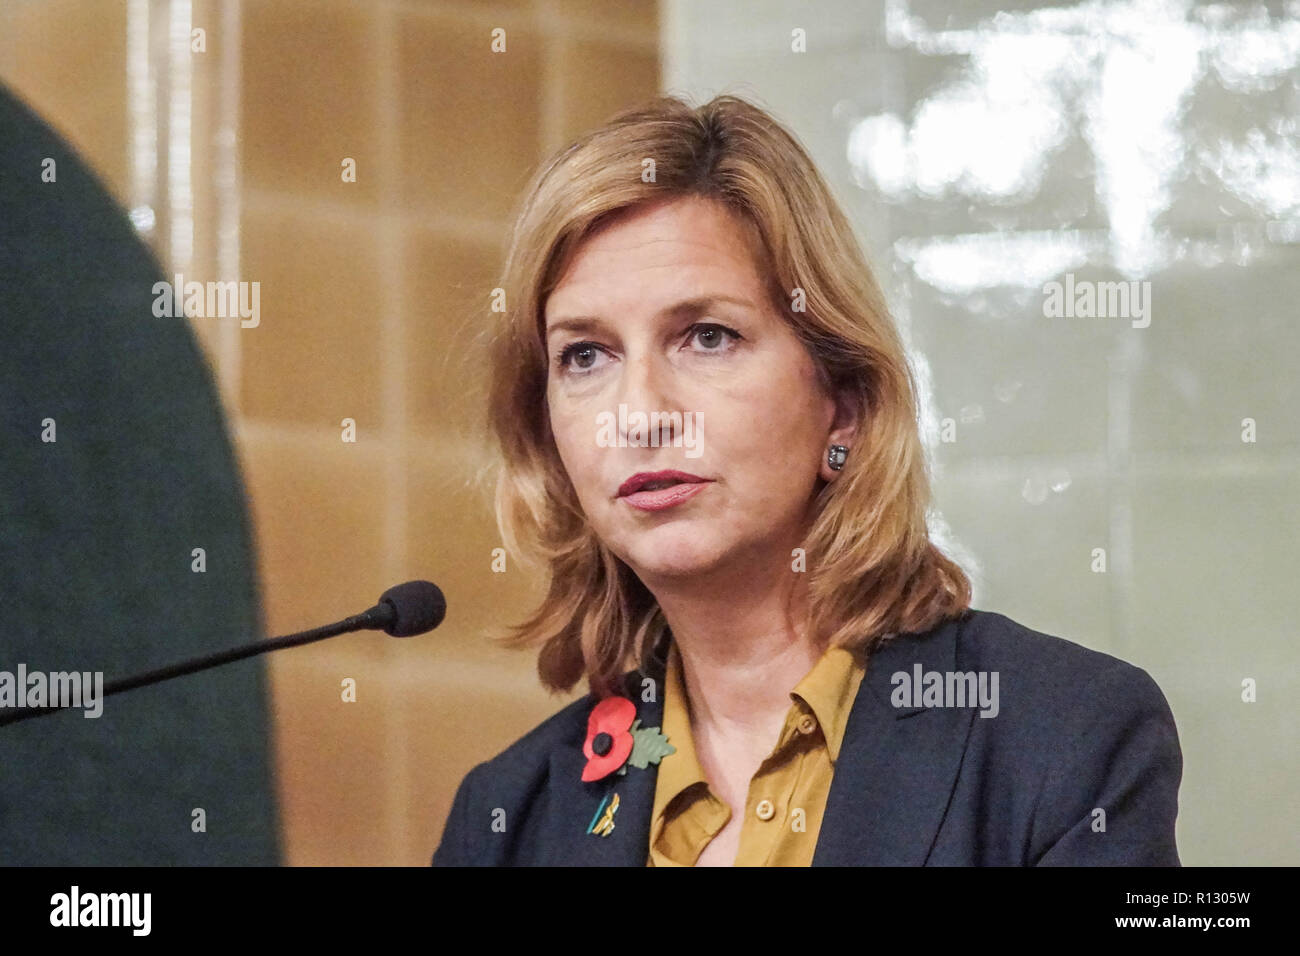 London, UK. 08 November 2018. London, England. Irina Von Wiese at Lib Dems hold GLA 2020 hustings in the David Lloyd George Room at the National Liberal Club. Reetendra Nath Banerji, Rob Blackie, Caroline Pidgeon, Charley Hasted, Irina Von Wiese, Chris Maines, Hina Bokhari and Joyce Onstad all addressed Liberal Democrat Party members with an view to selection as candidates for the Greater London Assembly election of 2020. © Peter Hogan/Alamy Live News - Stock Image